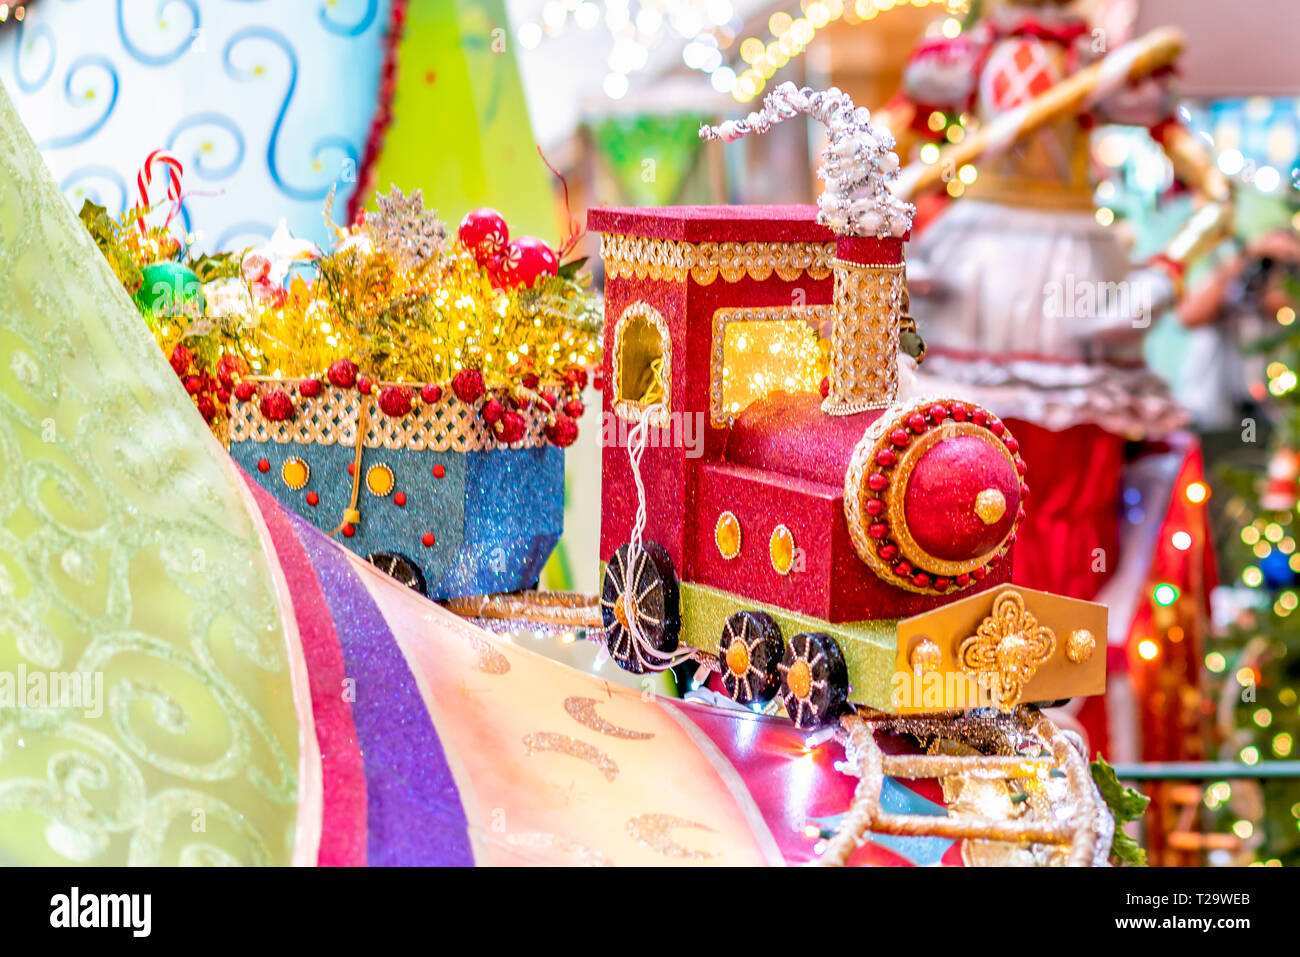 Colorful Christmas train decoration with lights and a sparkle background - Stock Image